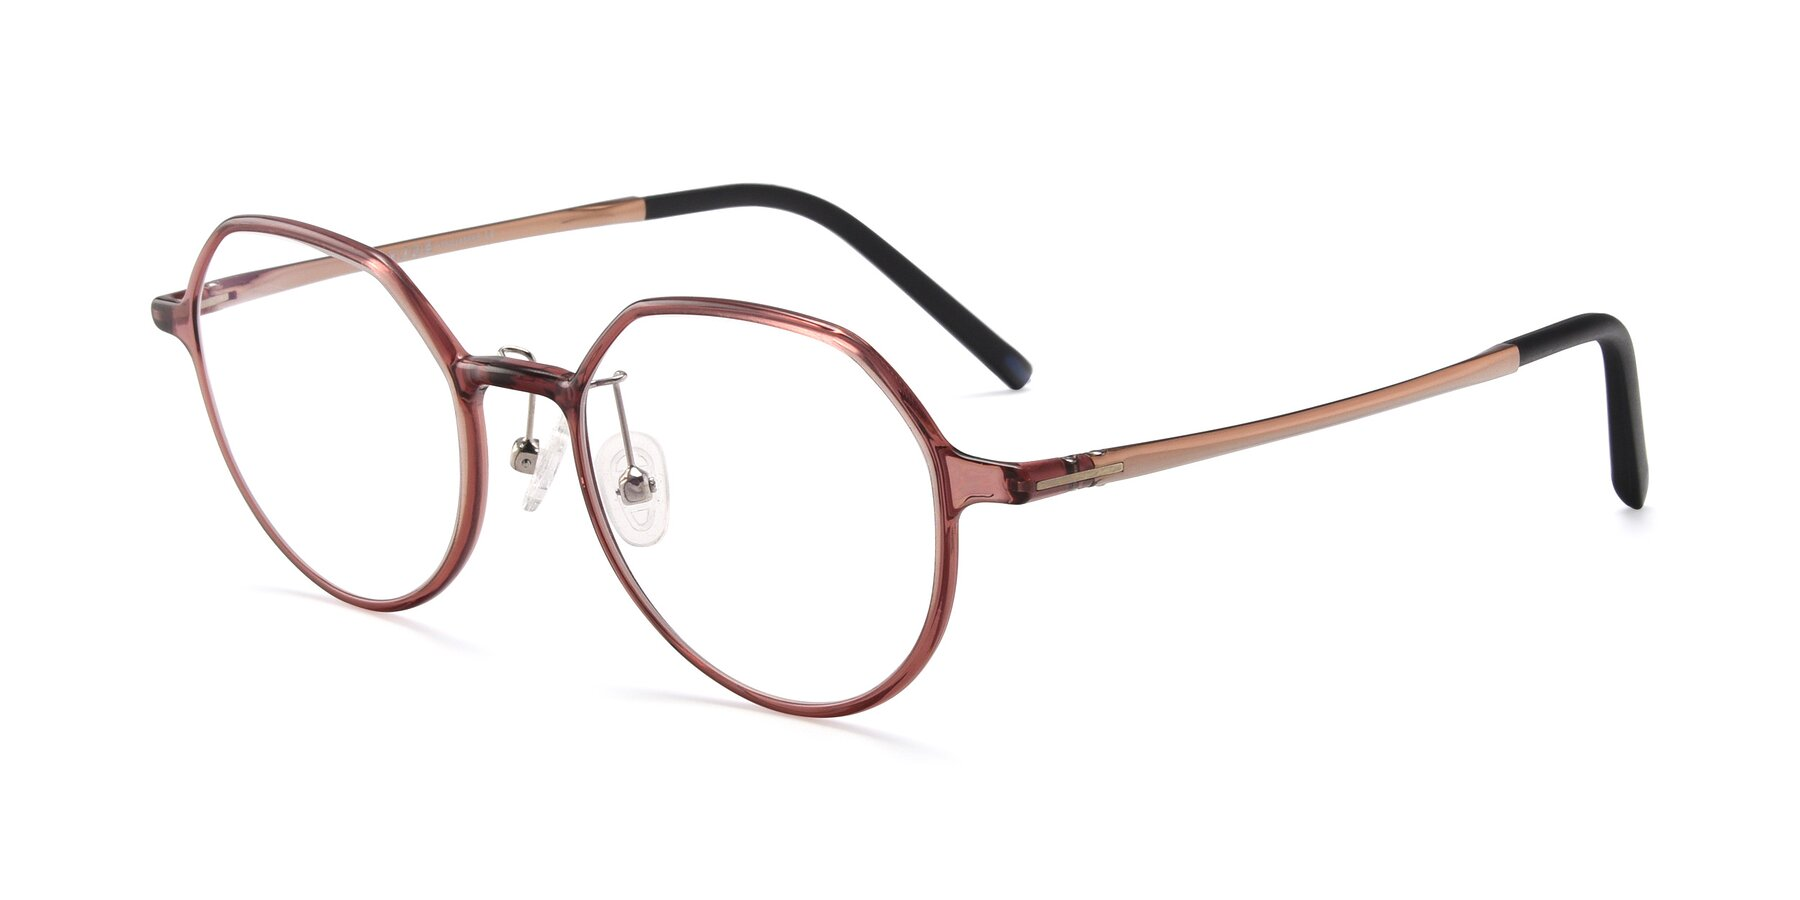 Angle of IP7033 in Brown with Clear Eyeglass Lenses